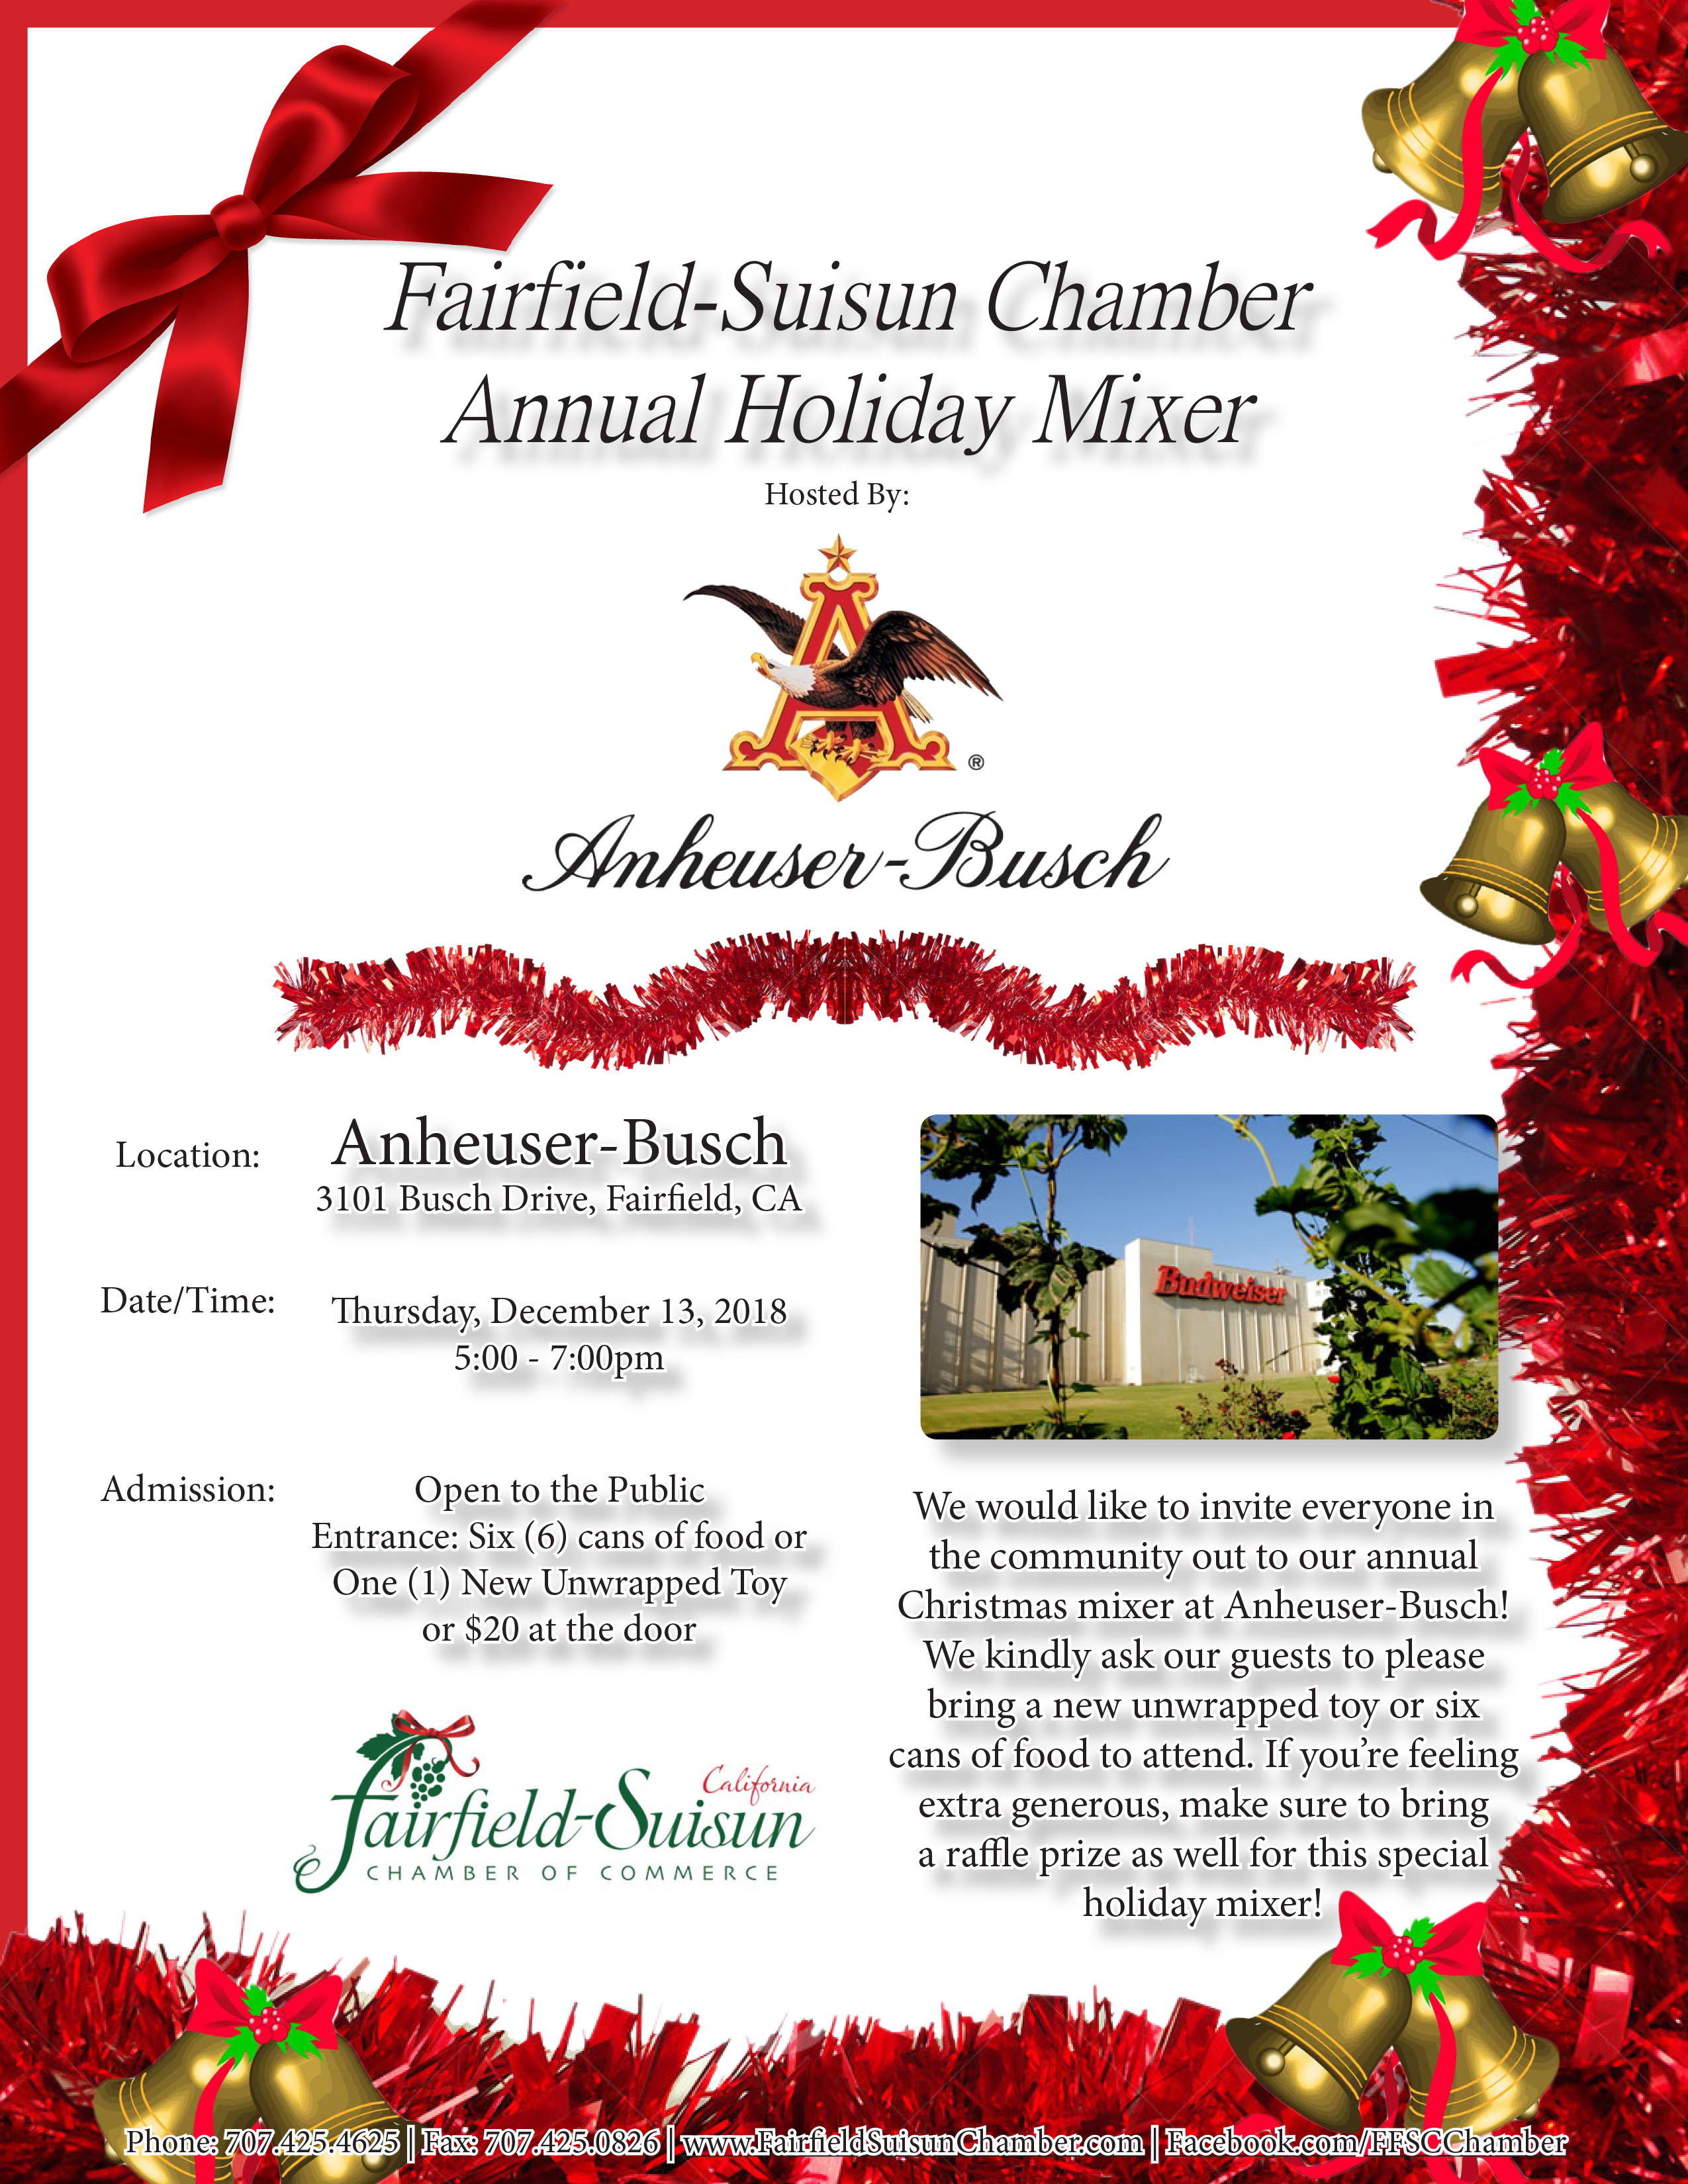 Fairfield-Suisun-Chamber-of-Commerce-Holiday-Mixer-2018